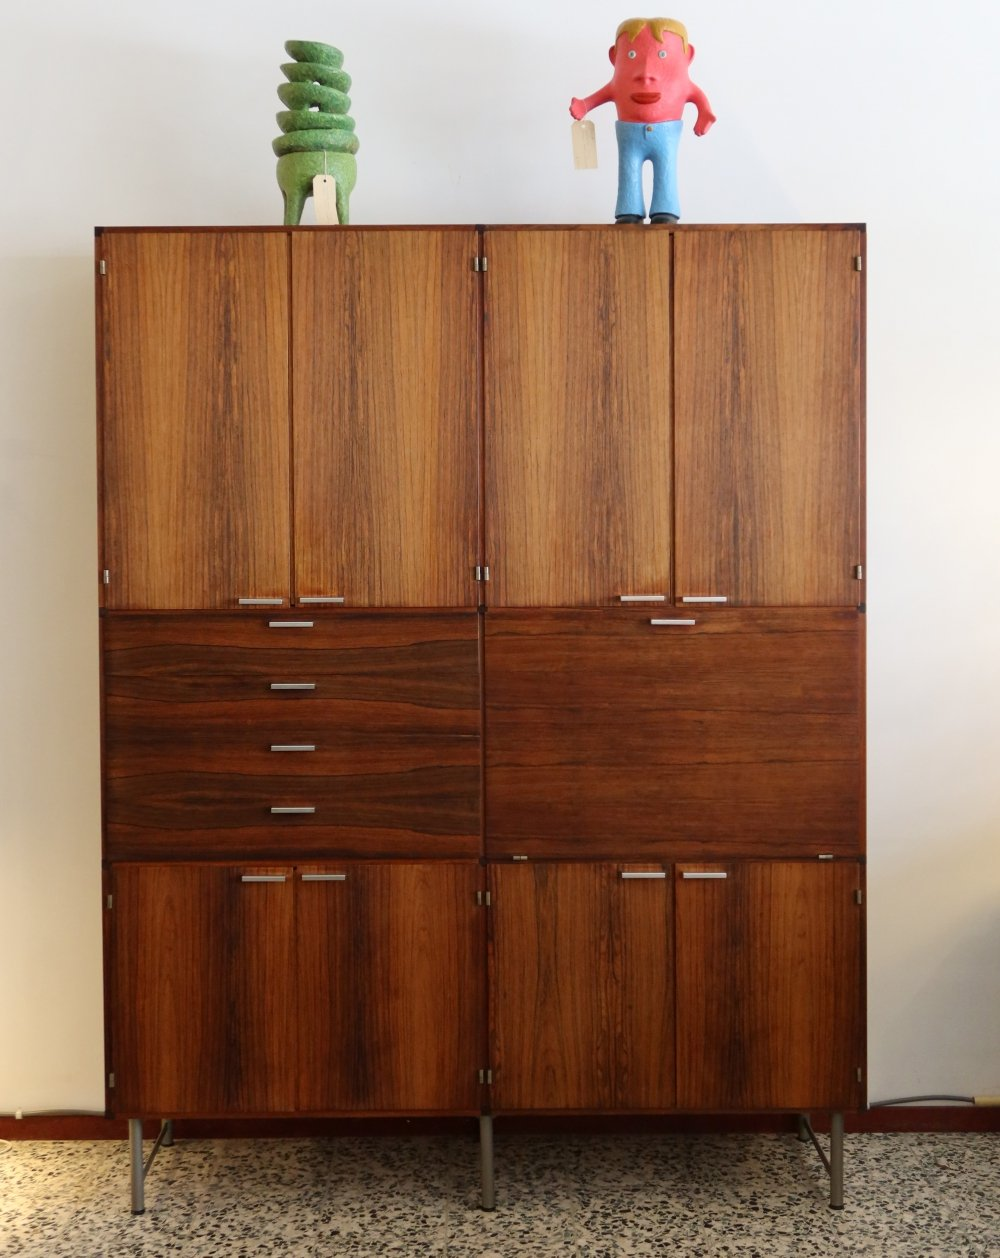 Rosewood Made to Measure cabinet by Cees Braakman, 1960s